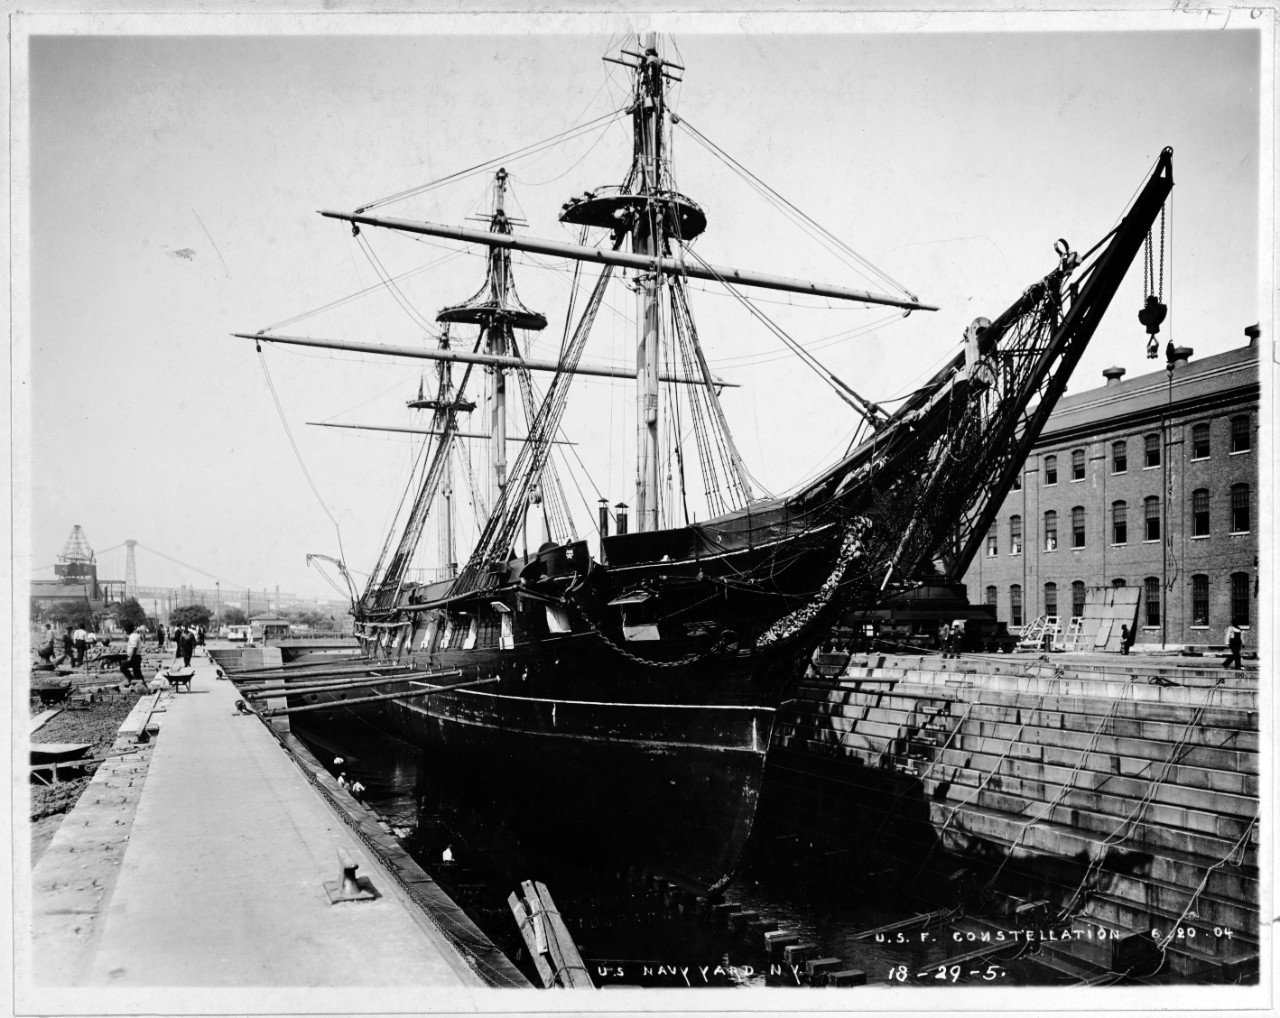 USS CONSTELLATION (1855-1955)